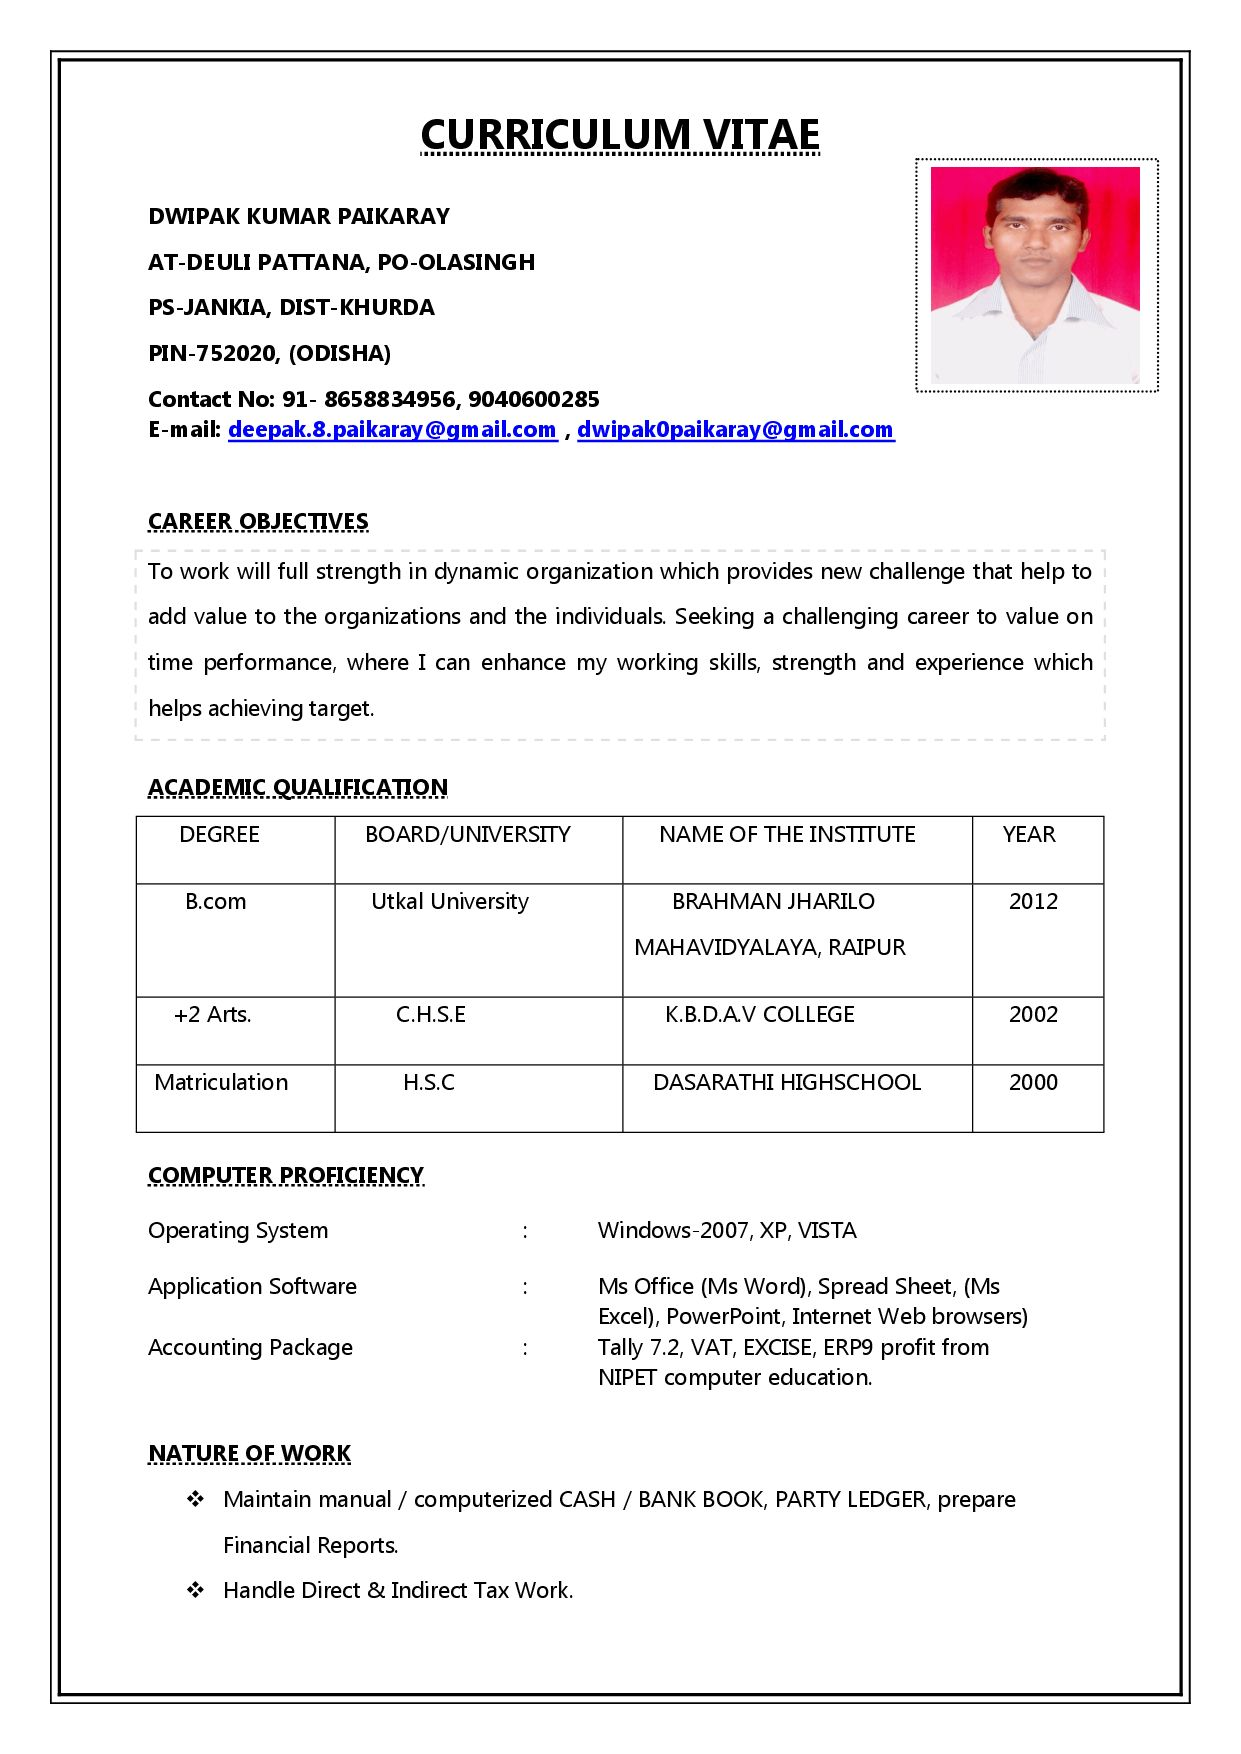 resume format job interview sample for freshers sharepoint business analyst wellness Resume Interview Resume Format For Freshers